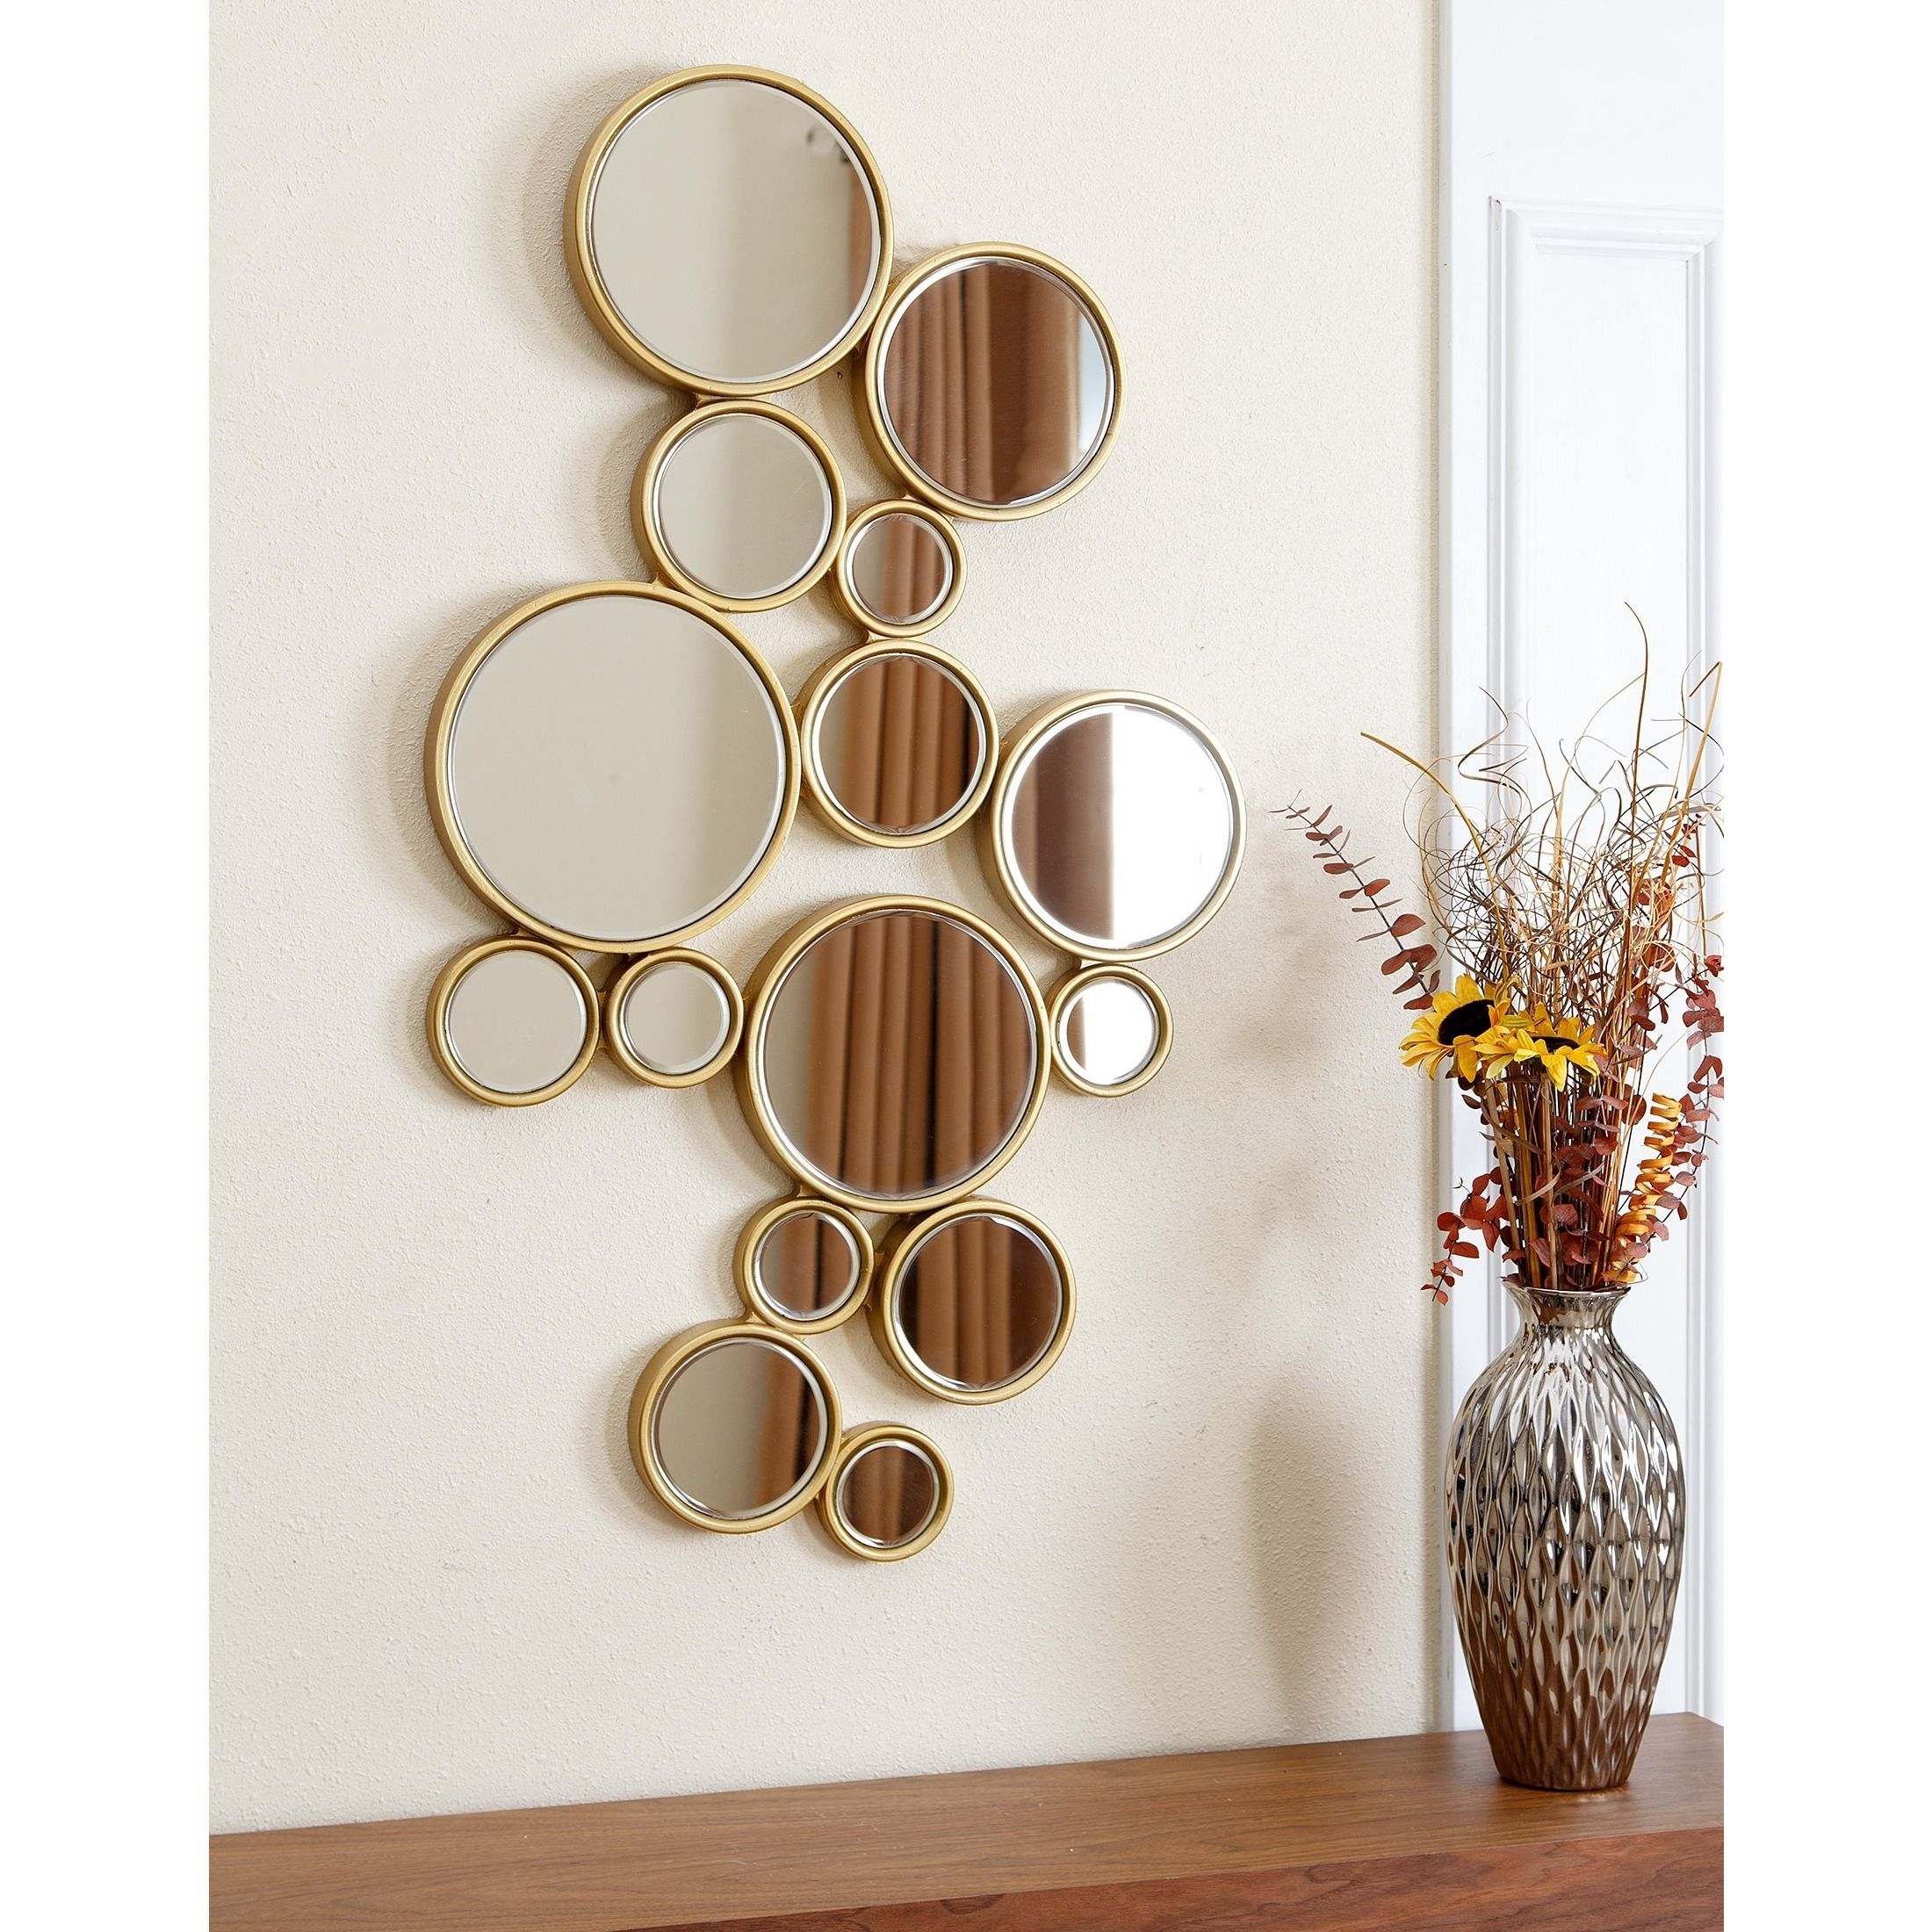 Different Shaped Mirrors add fun to your living space with the abbyson living wall mirror